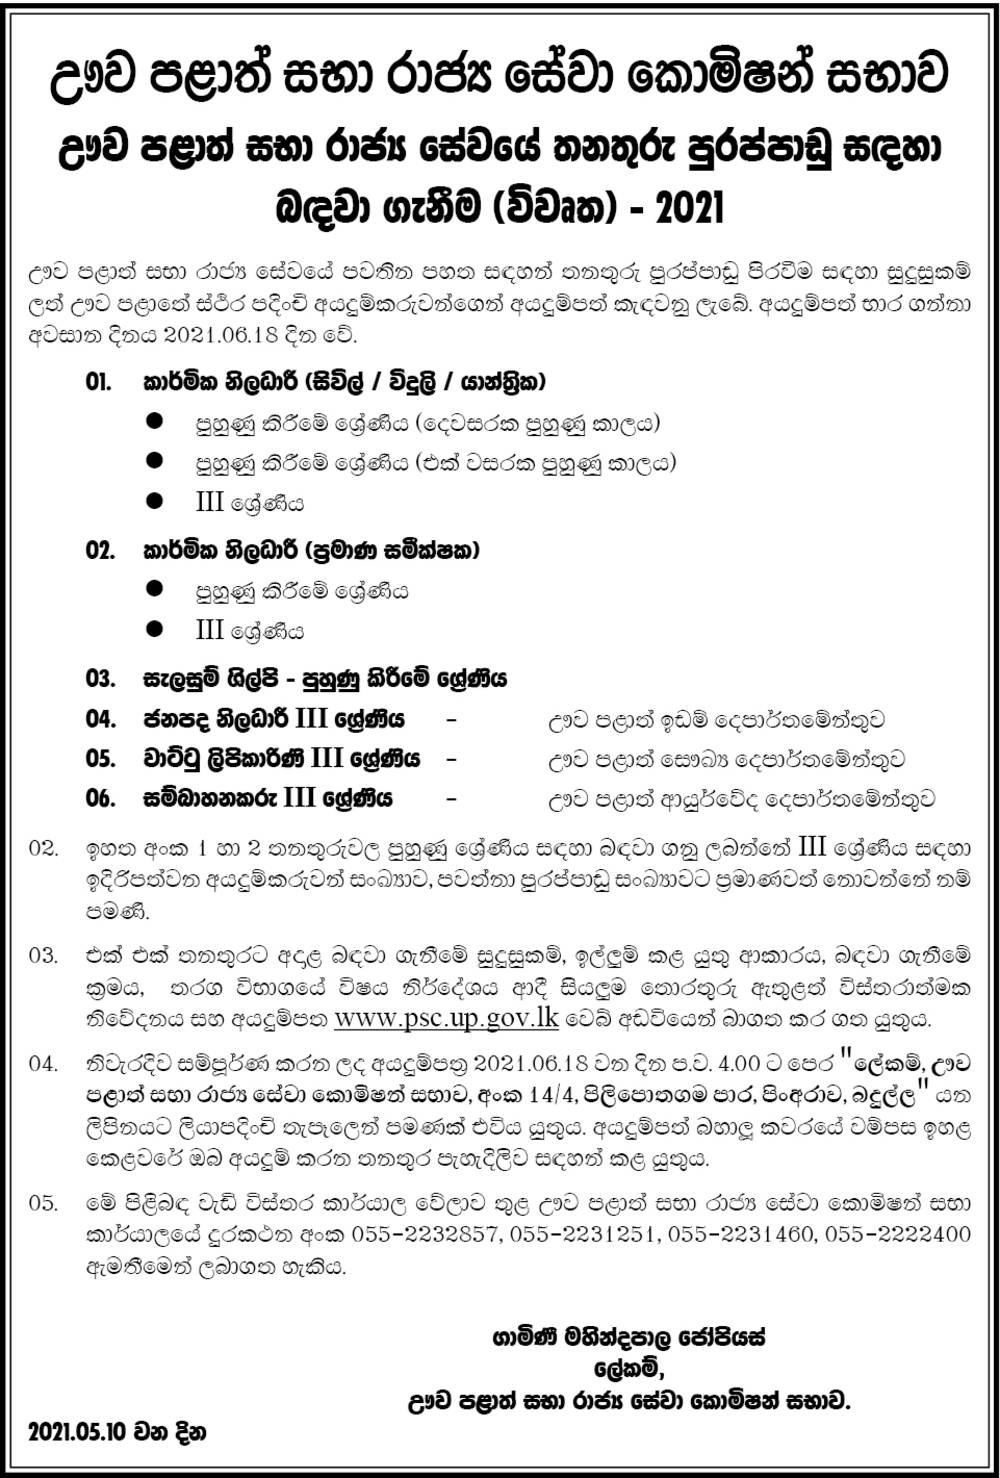 Colonial Officer and 6 vacancies